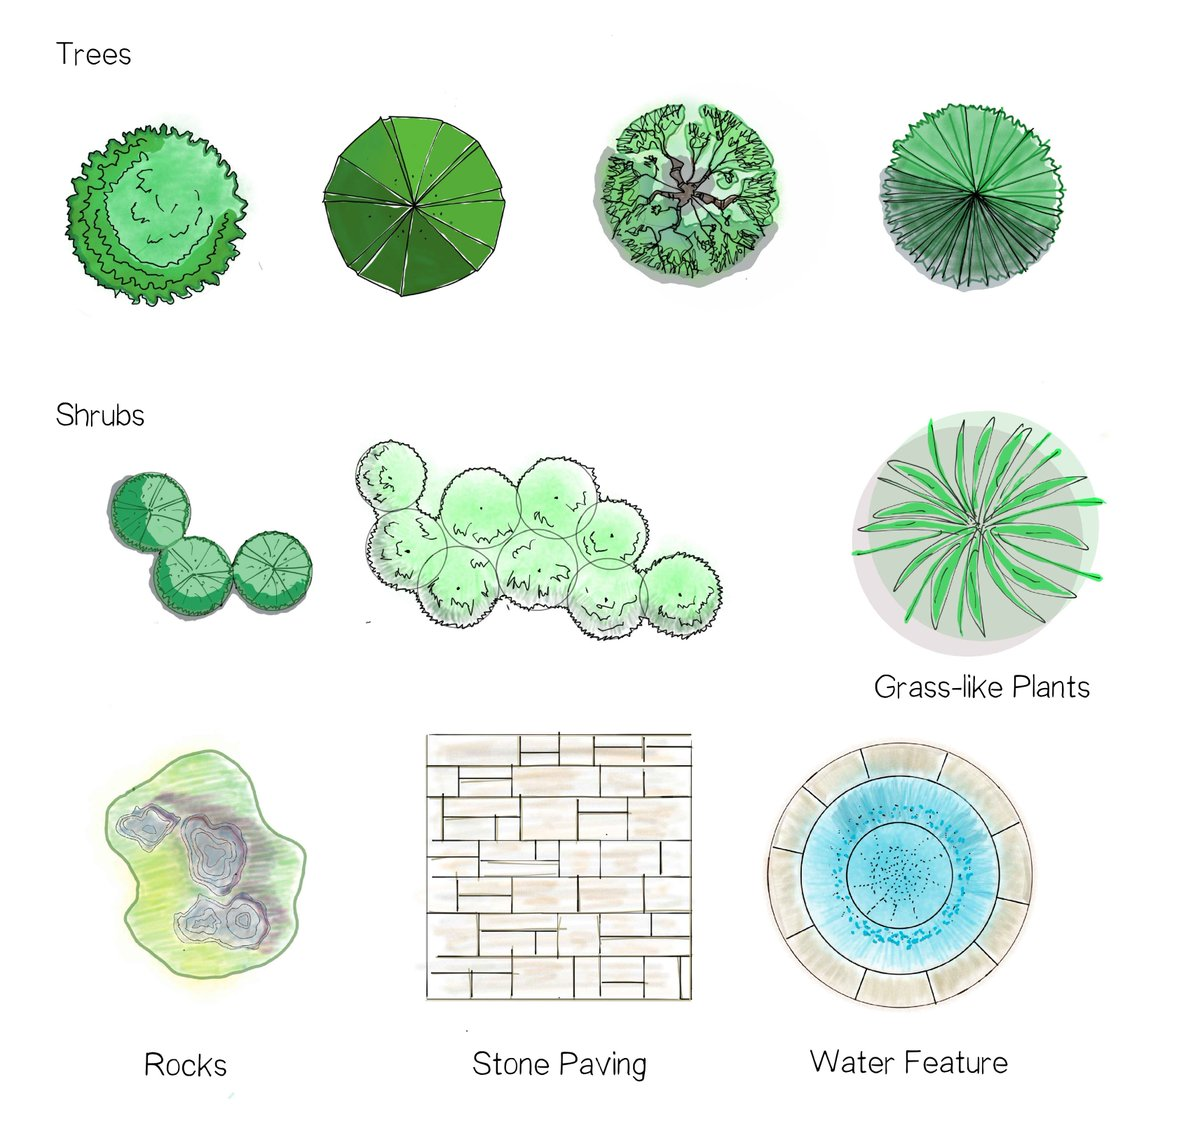 Garden Design Acad On Twitter Lovely Landscape Symbols By One Of